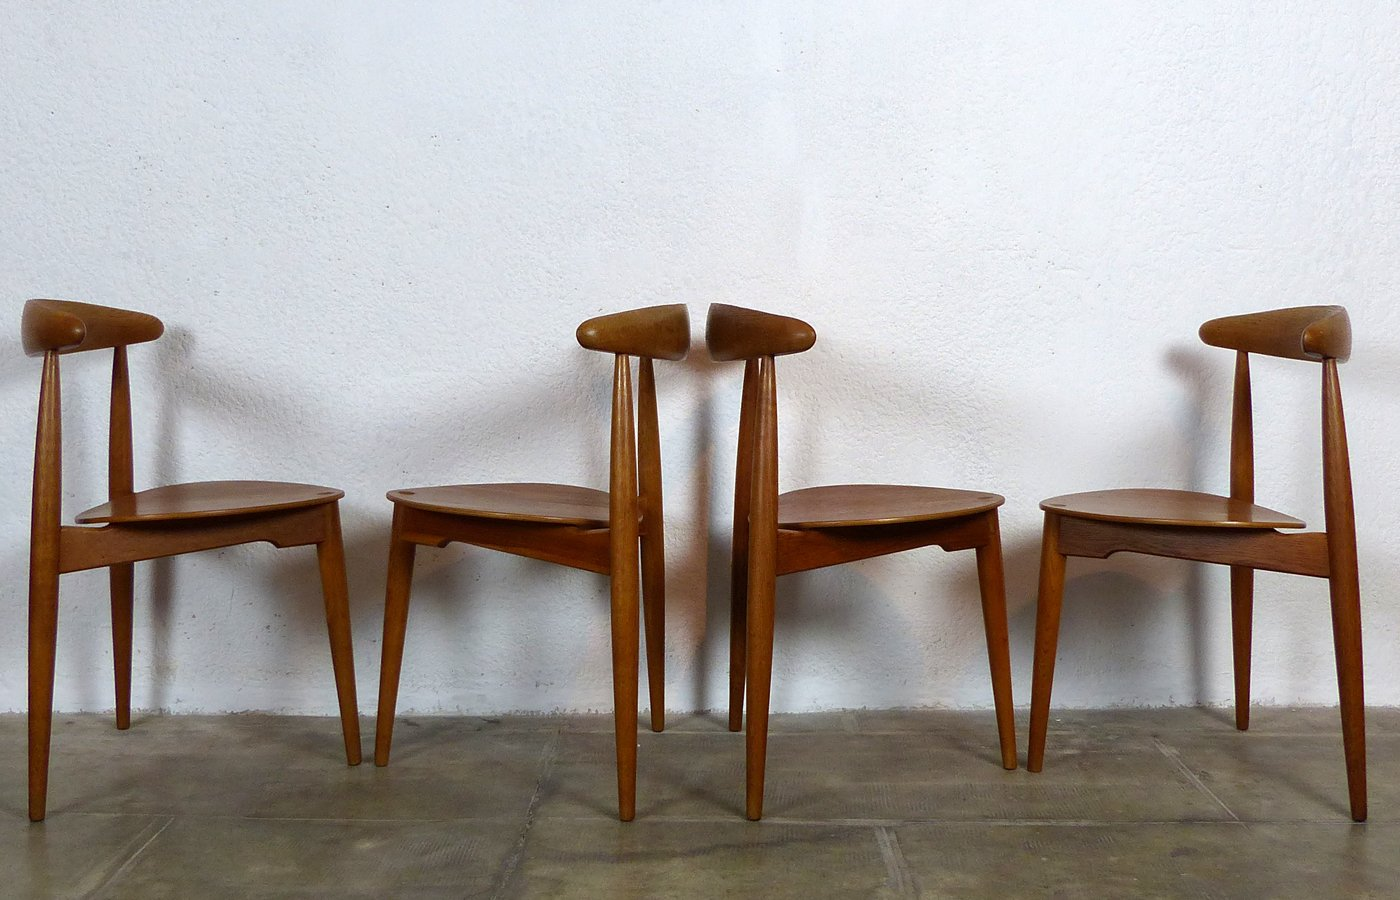 Heart Chairs By Hans Wegner For Fritz Hansen, 1955, Set Of 4